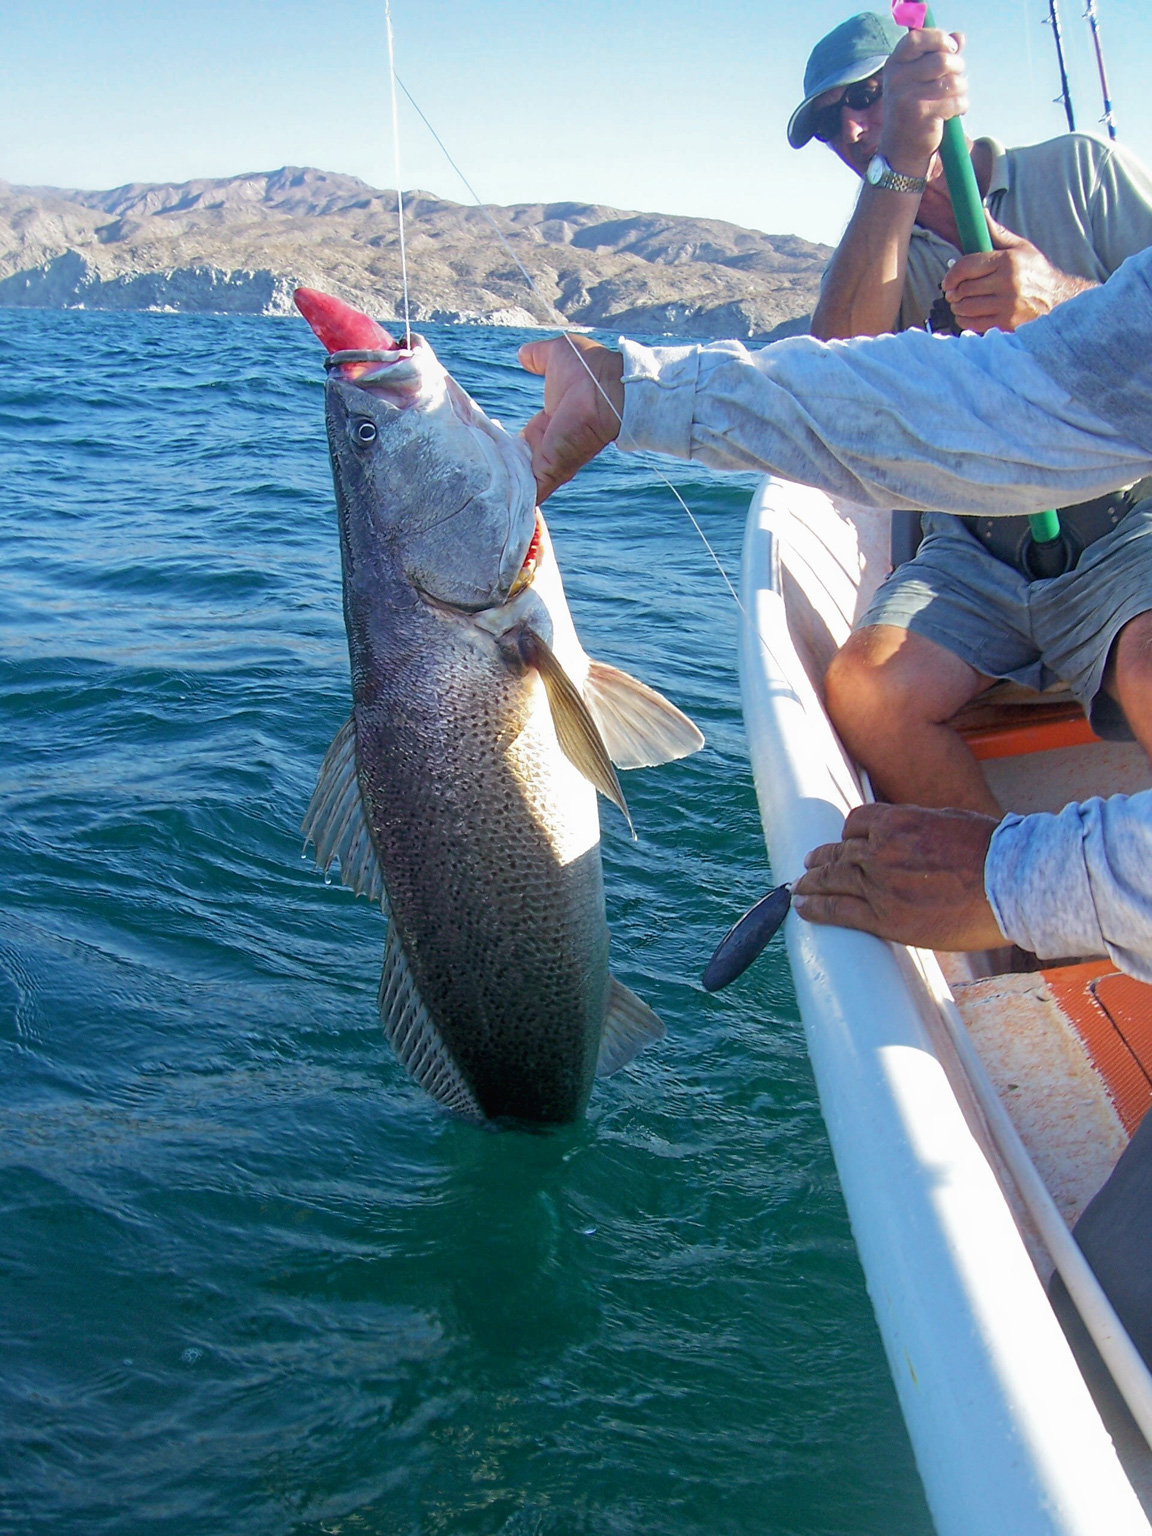 Tony reyes fishing tours photo gallery for Fishing vacation packages